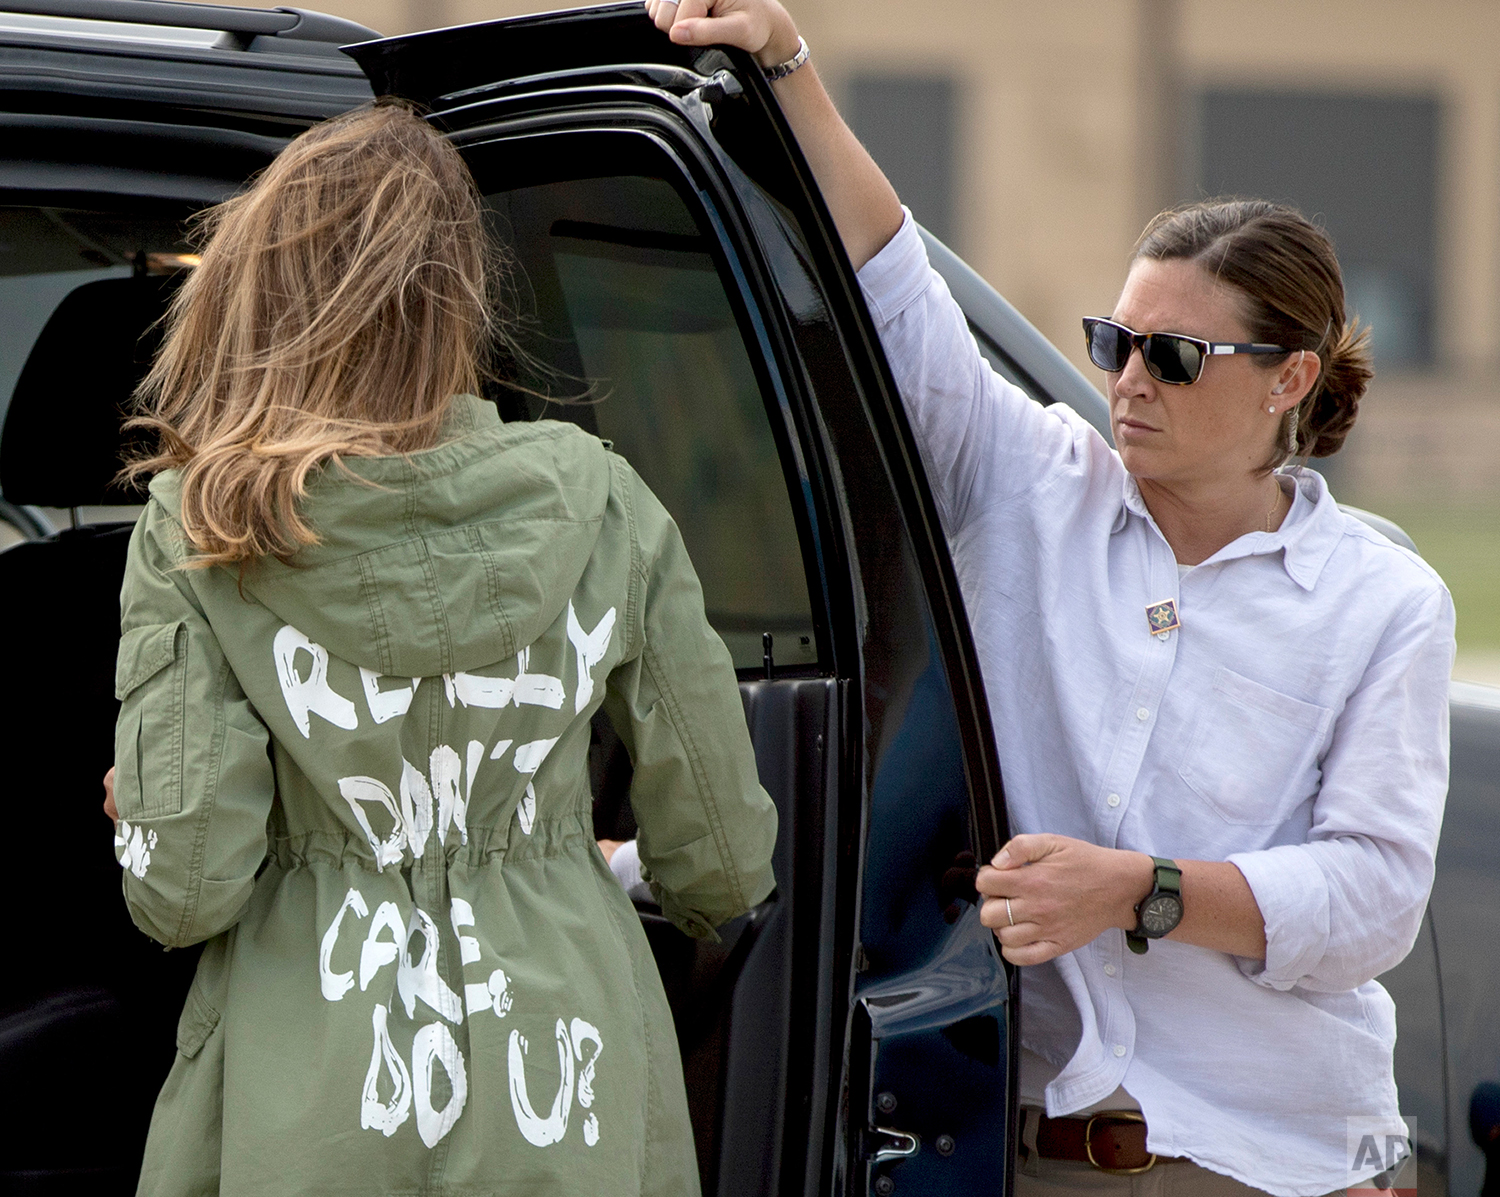 First lady Melania Trump walks to her vehicle as she arrives at Andrews Air Force Base, Md., Thursday, June 21, 2018, after visiting the Upbring New Hope Children Center run by the Lutheran Social Services of the South in McAllen, Texas. (AP Photo/Andrew Harnik)